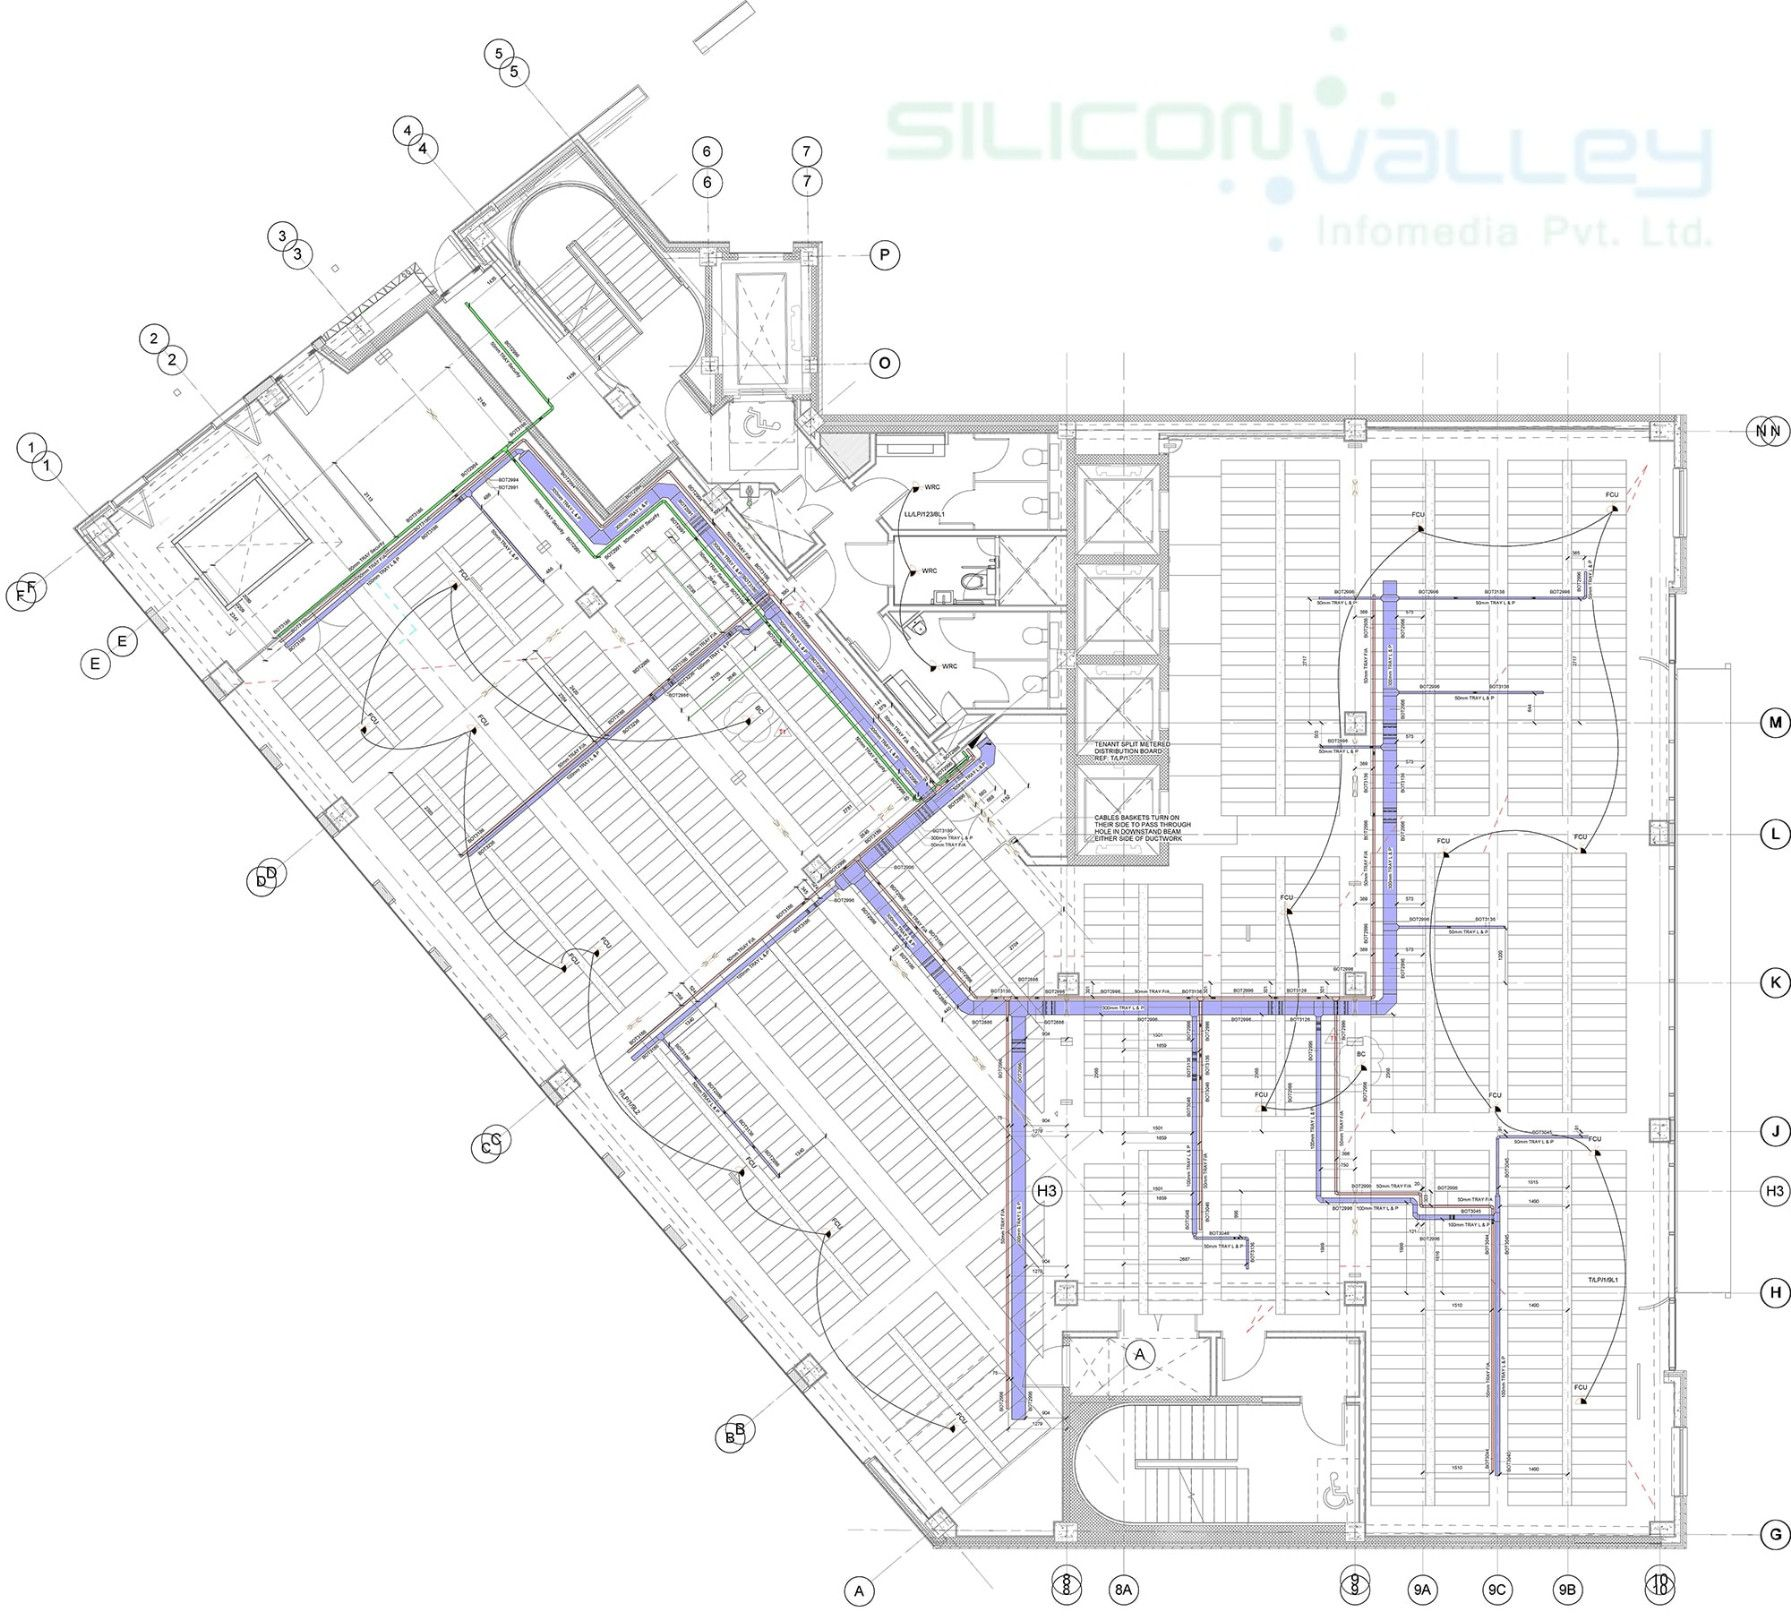 silicon info provides mep shop drawing detailing services for [ 1791 x 1619 Pixel ]